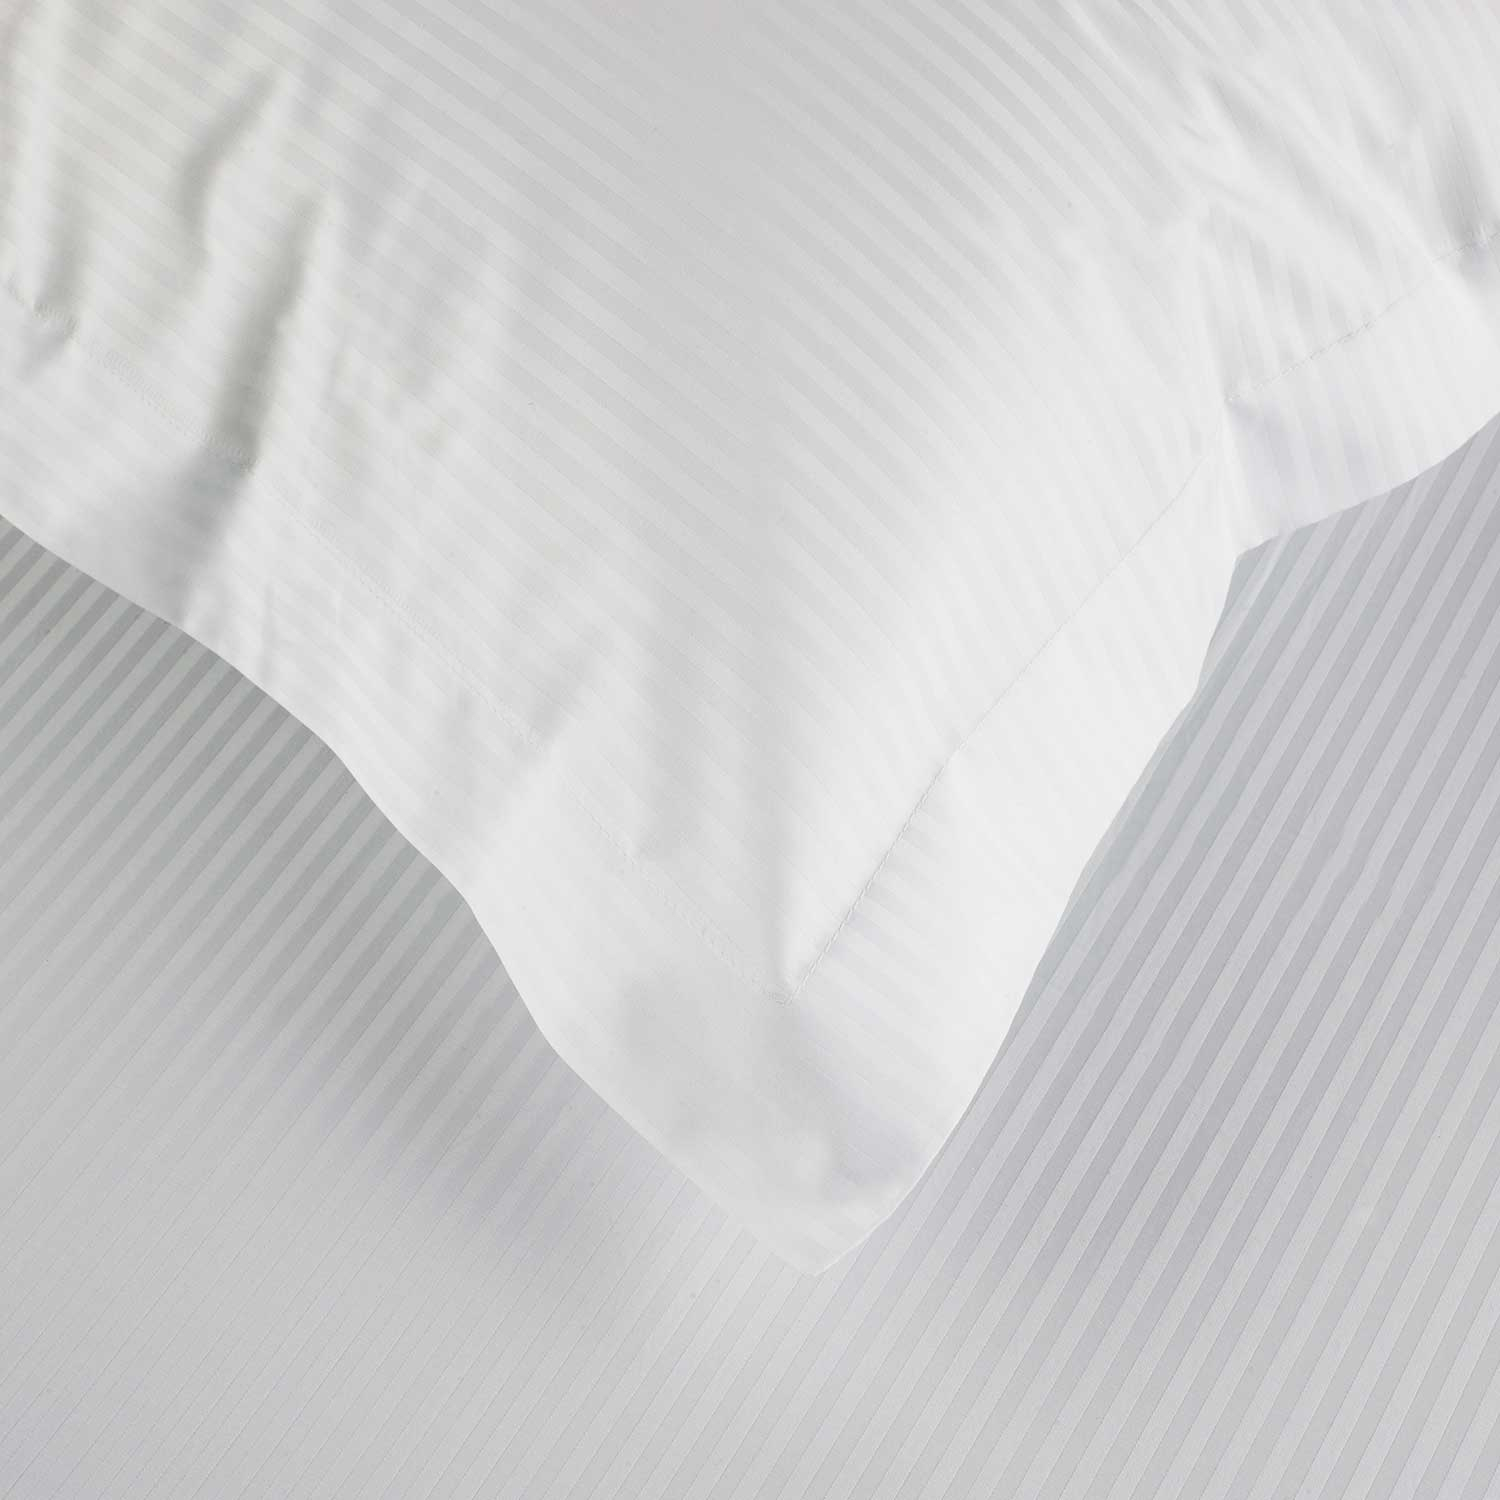 Tc-500-stripped-pillowcase-image.jpg